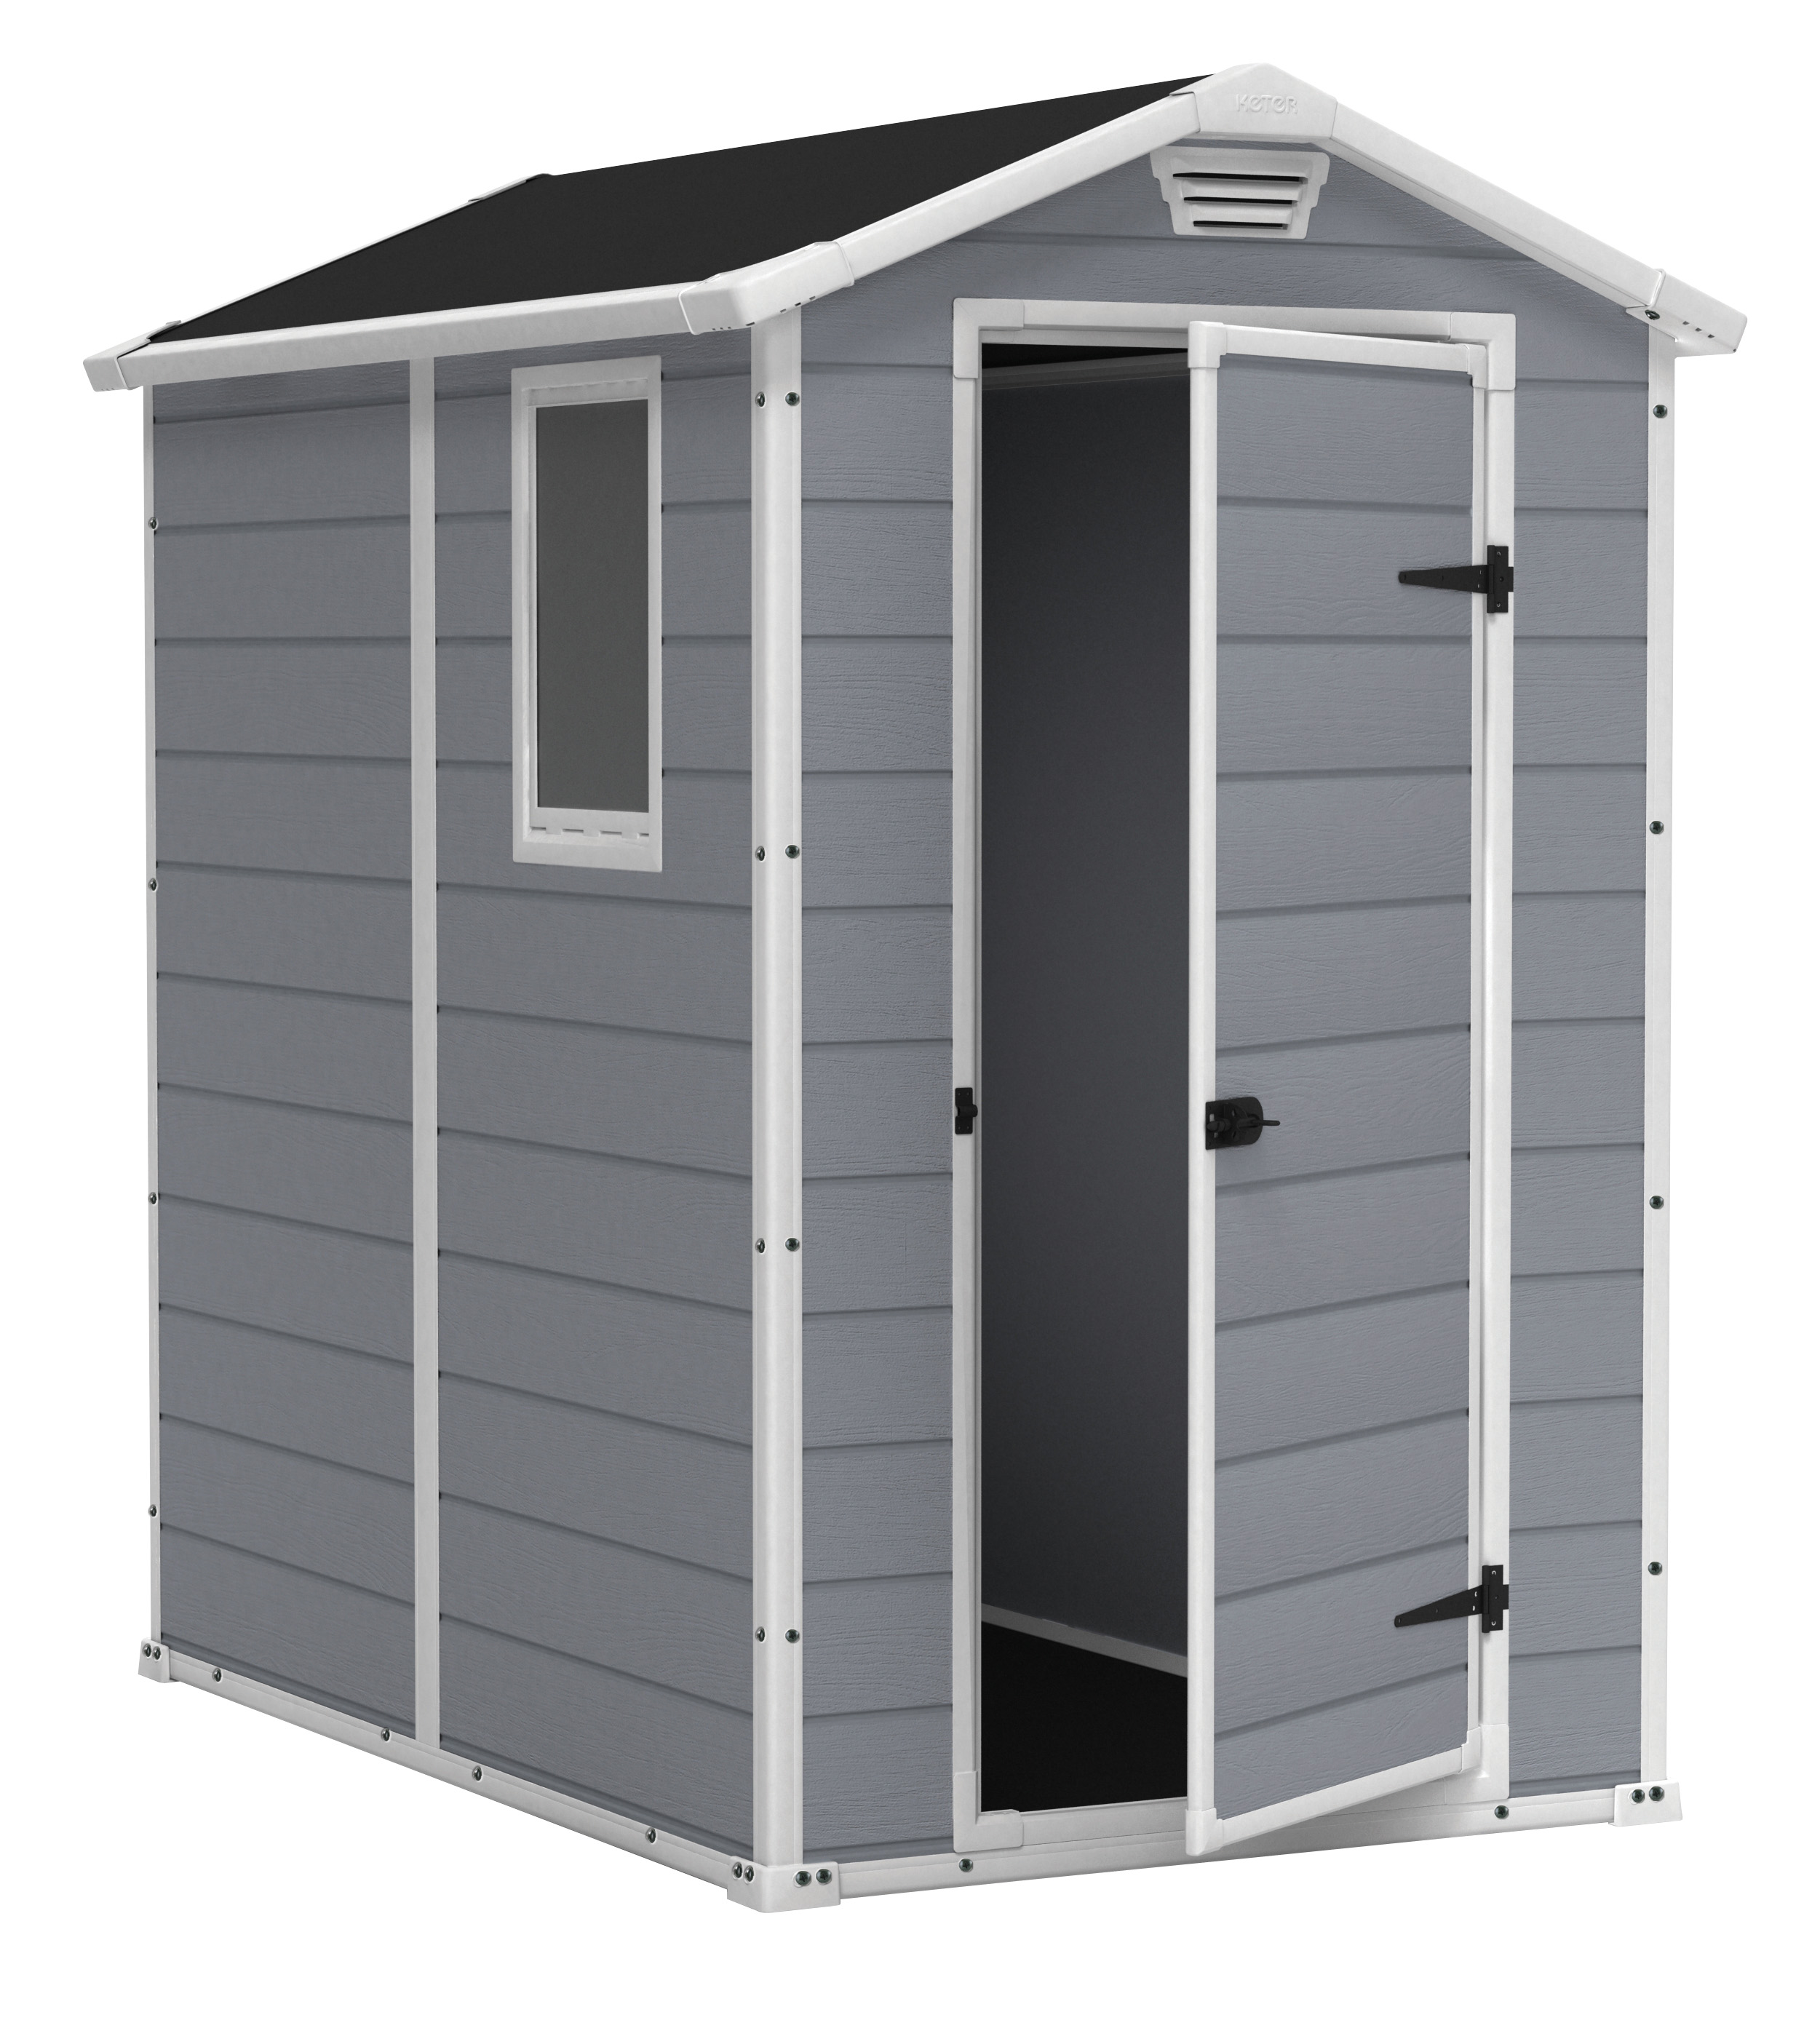 Keter Manor 4u0027 X 6u0027 Resin Storage Shed, All Weather Plastic Outdoor